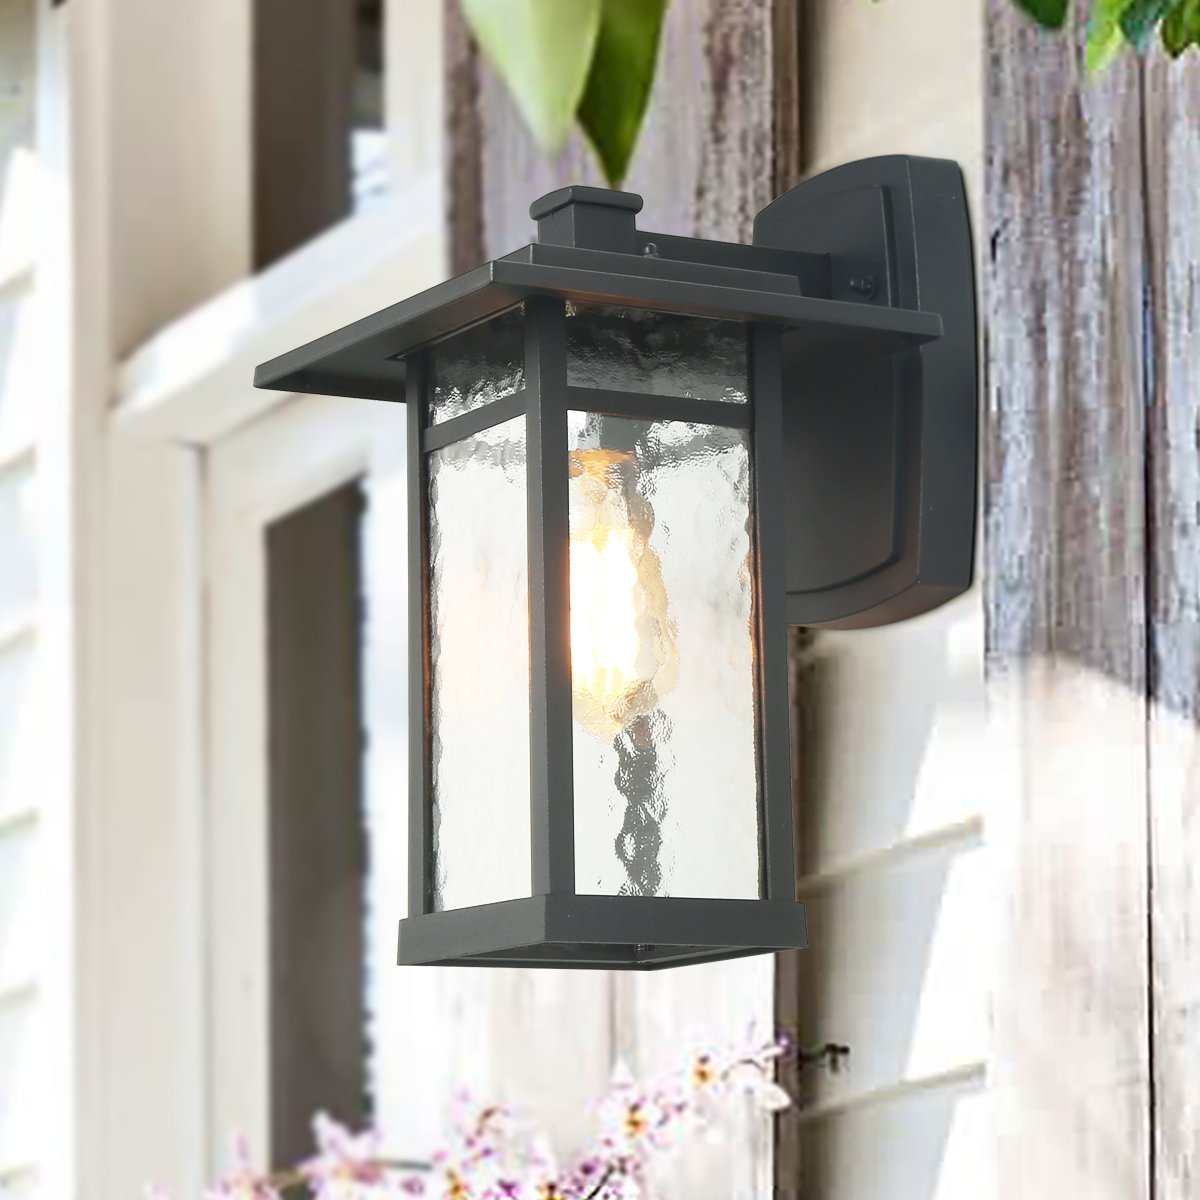 LOG BARN A03321 Outdoor Wall Sconce, 1-Light Transitional Porch Lantern Light Fixture in Textured Black with Obscured Glass